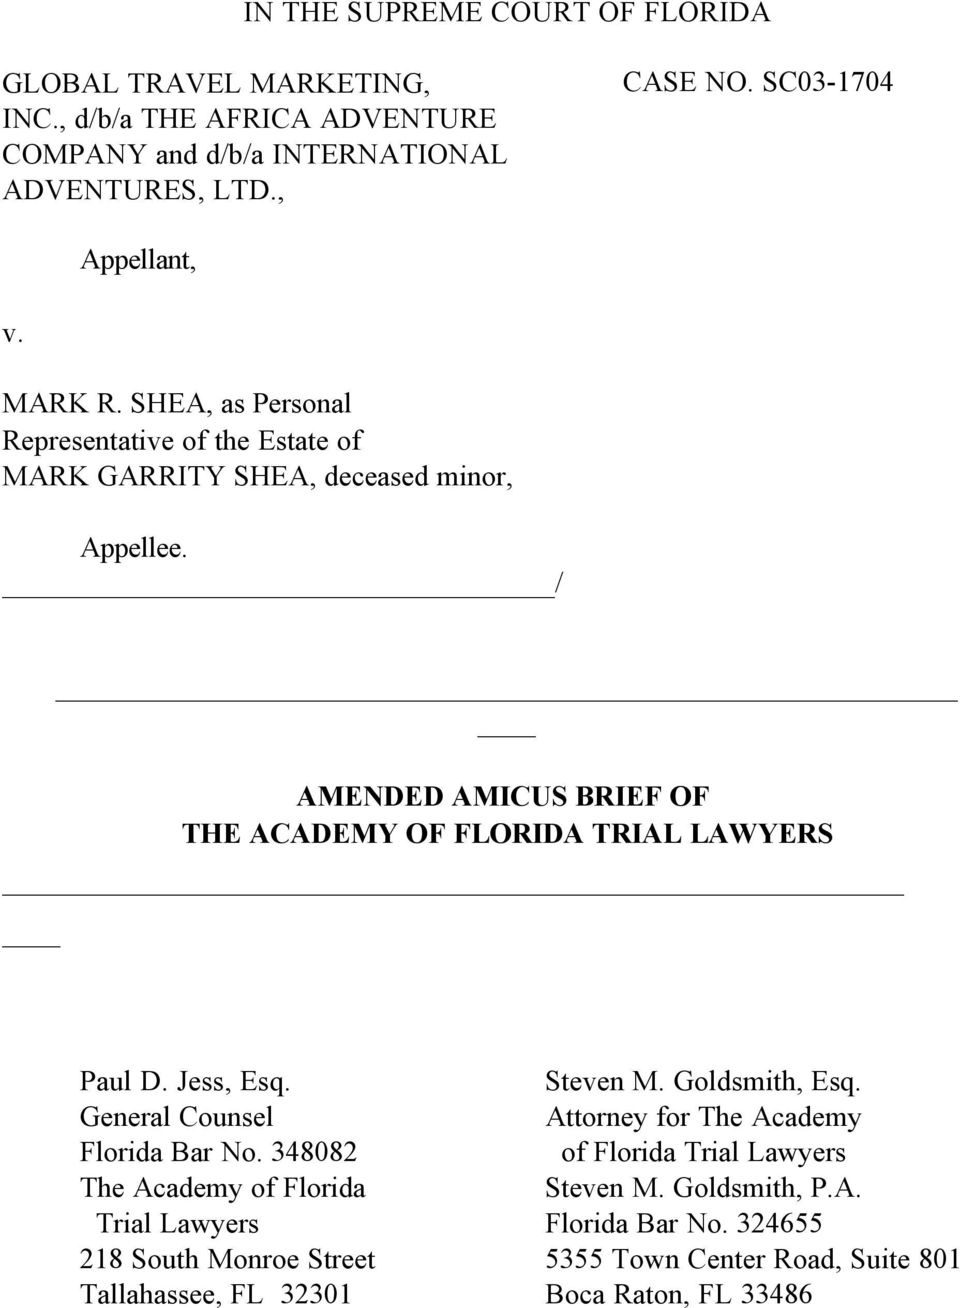 / AMENDED AMICUS BRIEF OF THE ACADEMY OF FLORIDA TRIAL LAWYERS Paul D. Jess, Esq. Steven M. Goldsmith, Esq. General Counsel Attorney for The Academy Florida Bar No.